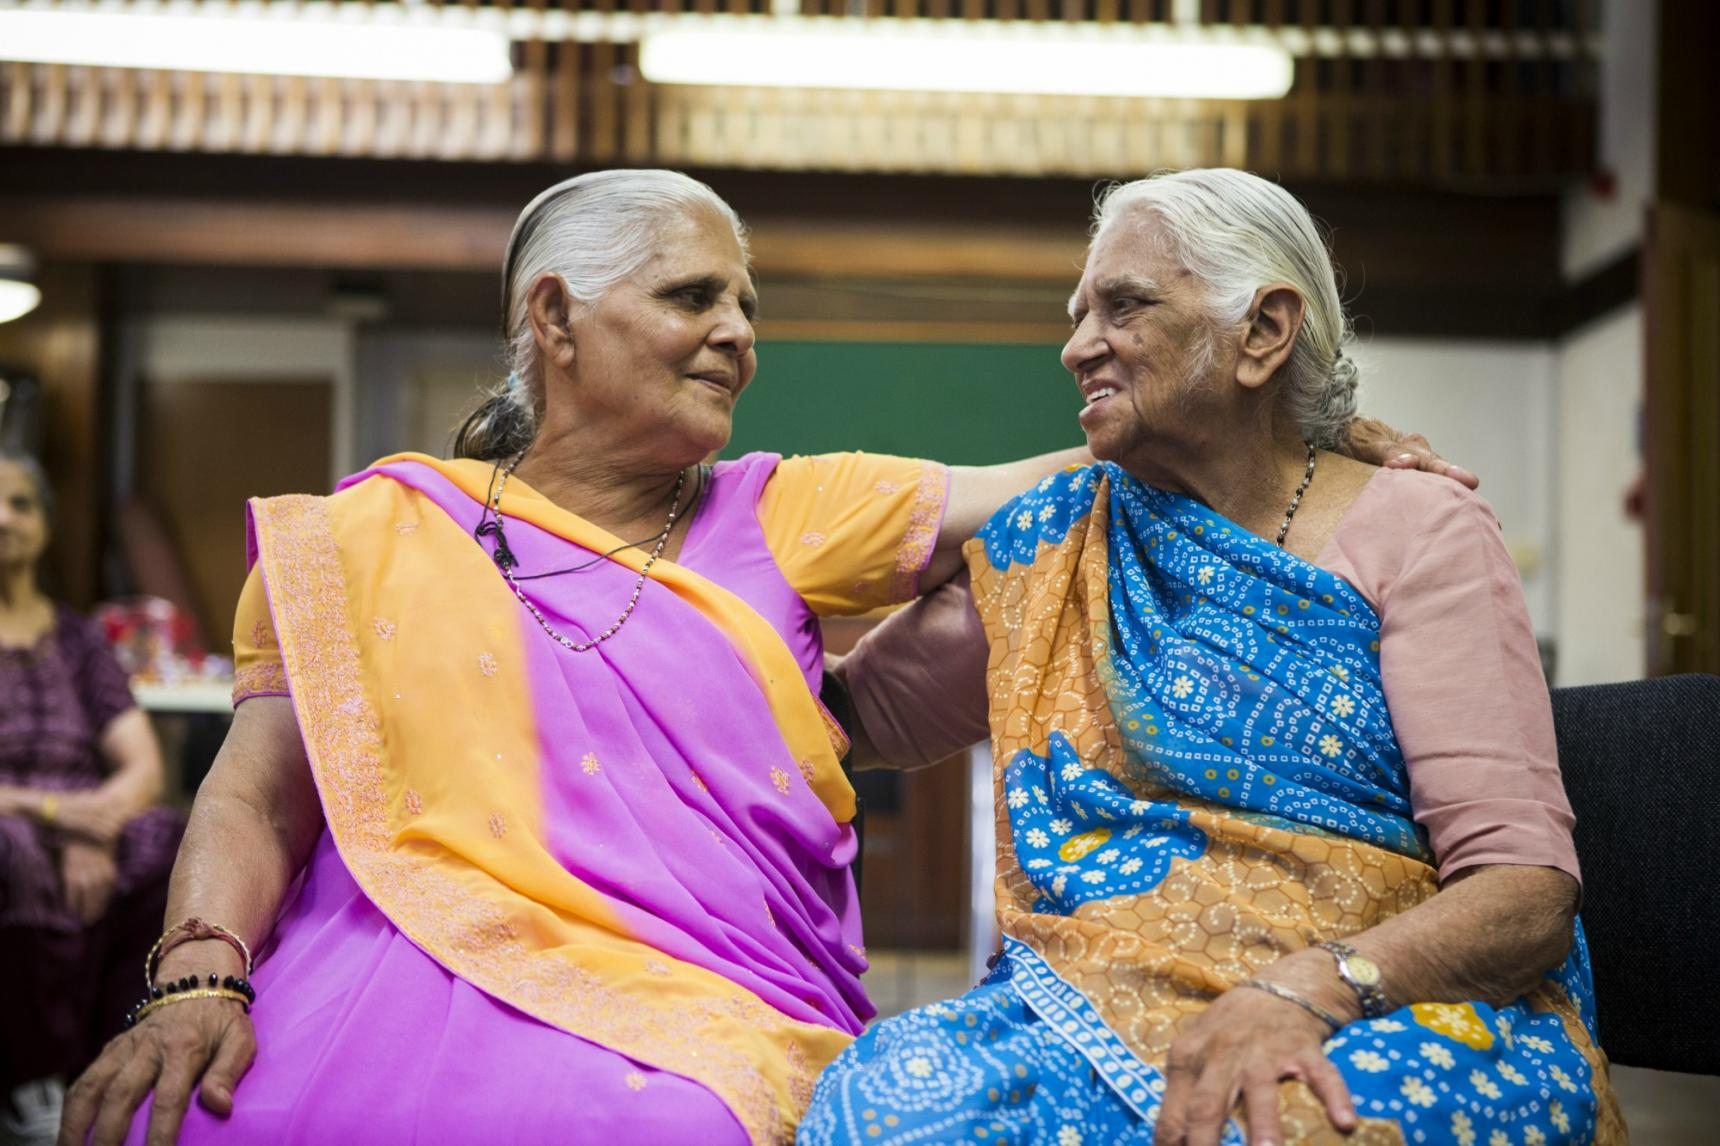 Two women in saris at church